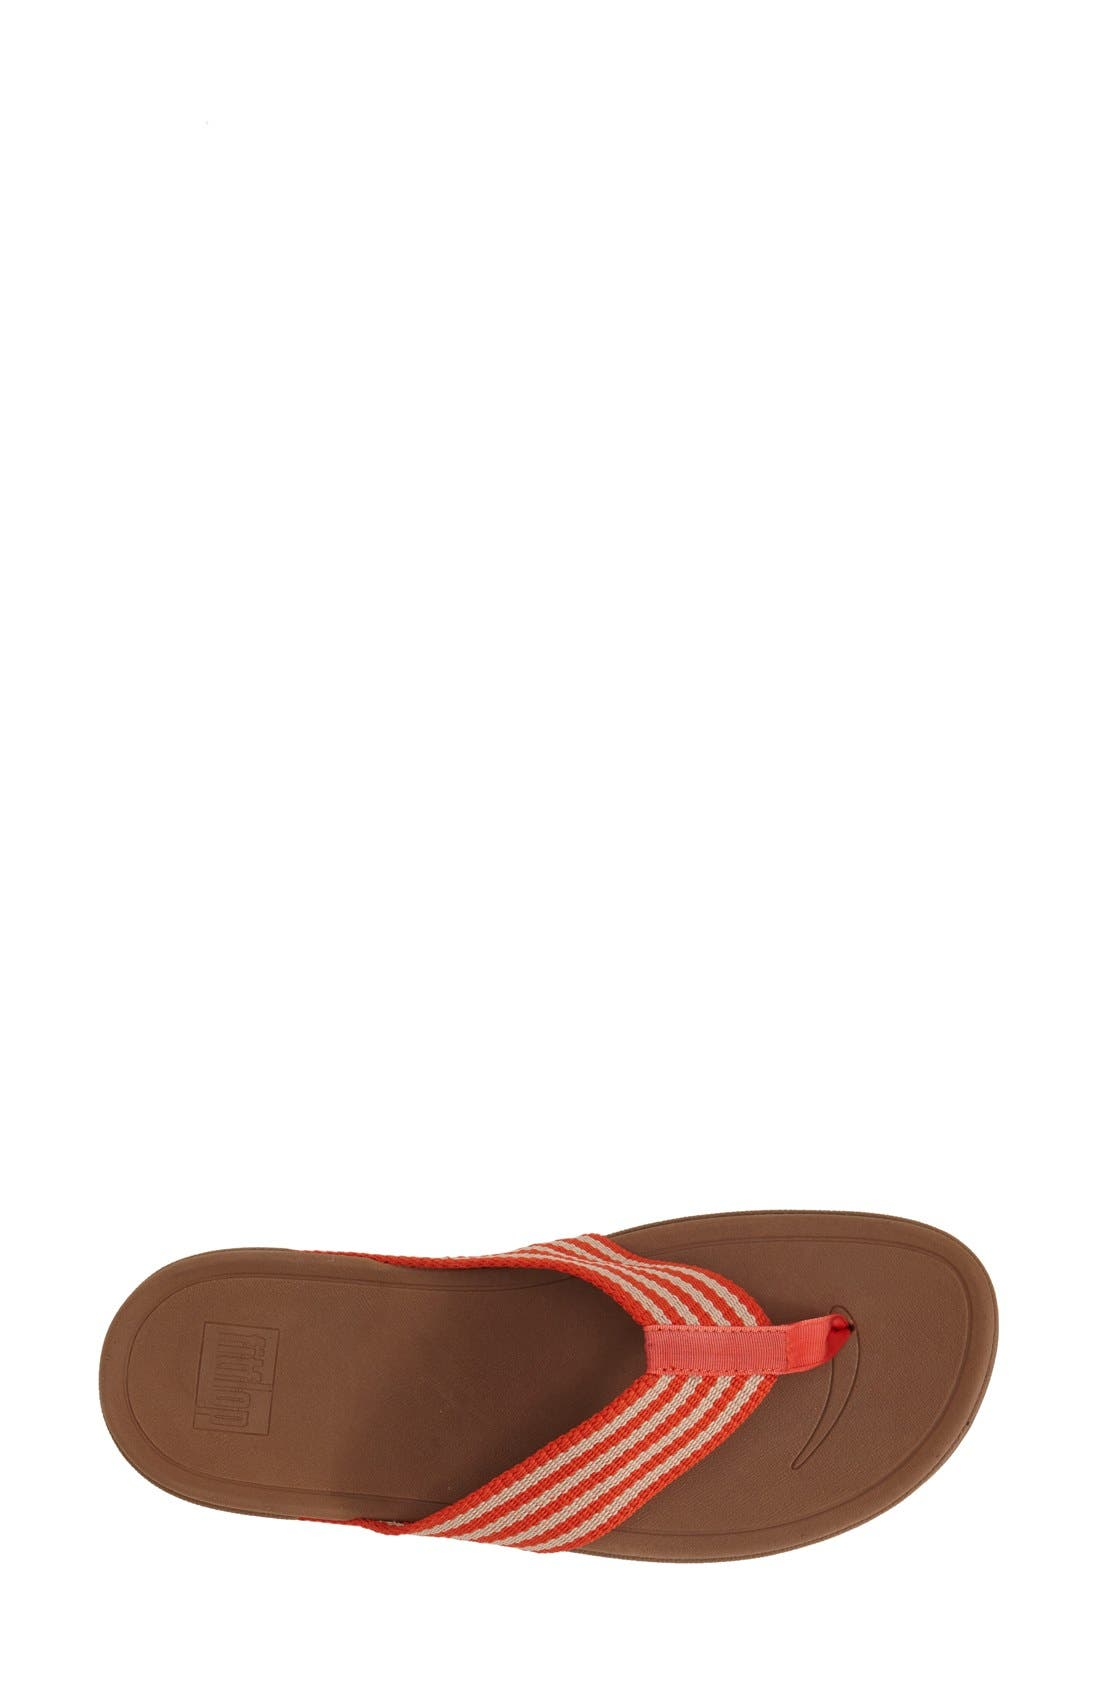 'Surfa' Thong Sandal,                             Alternate thumbnail 25, color,